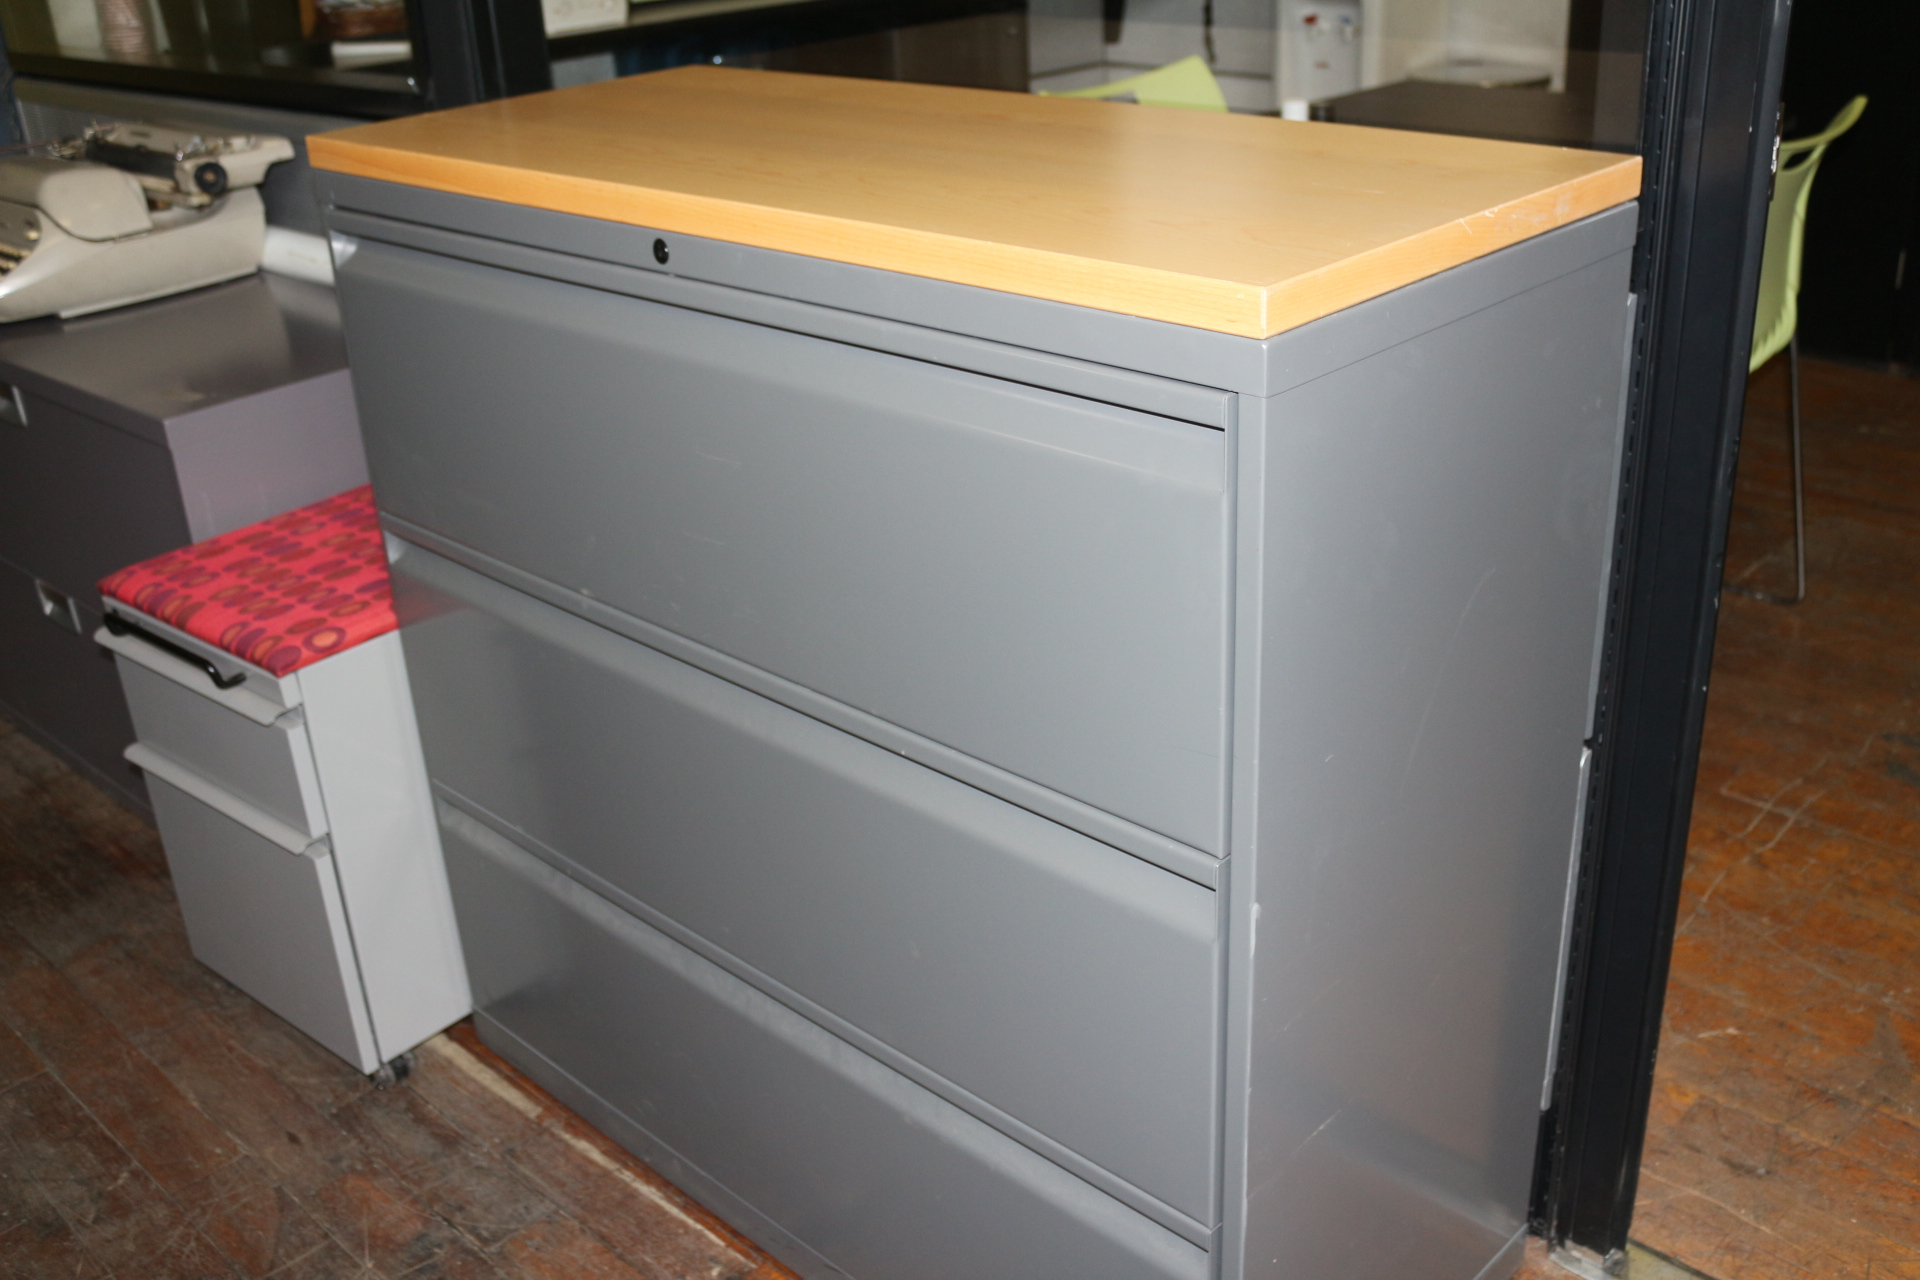 peartreeofficefurniture_peartreeofficefurniture_img_0845.jpg